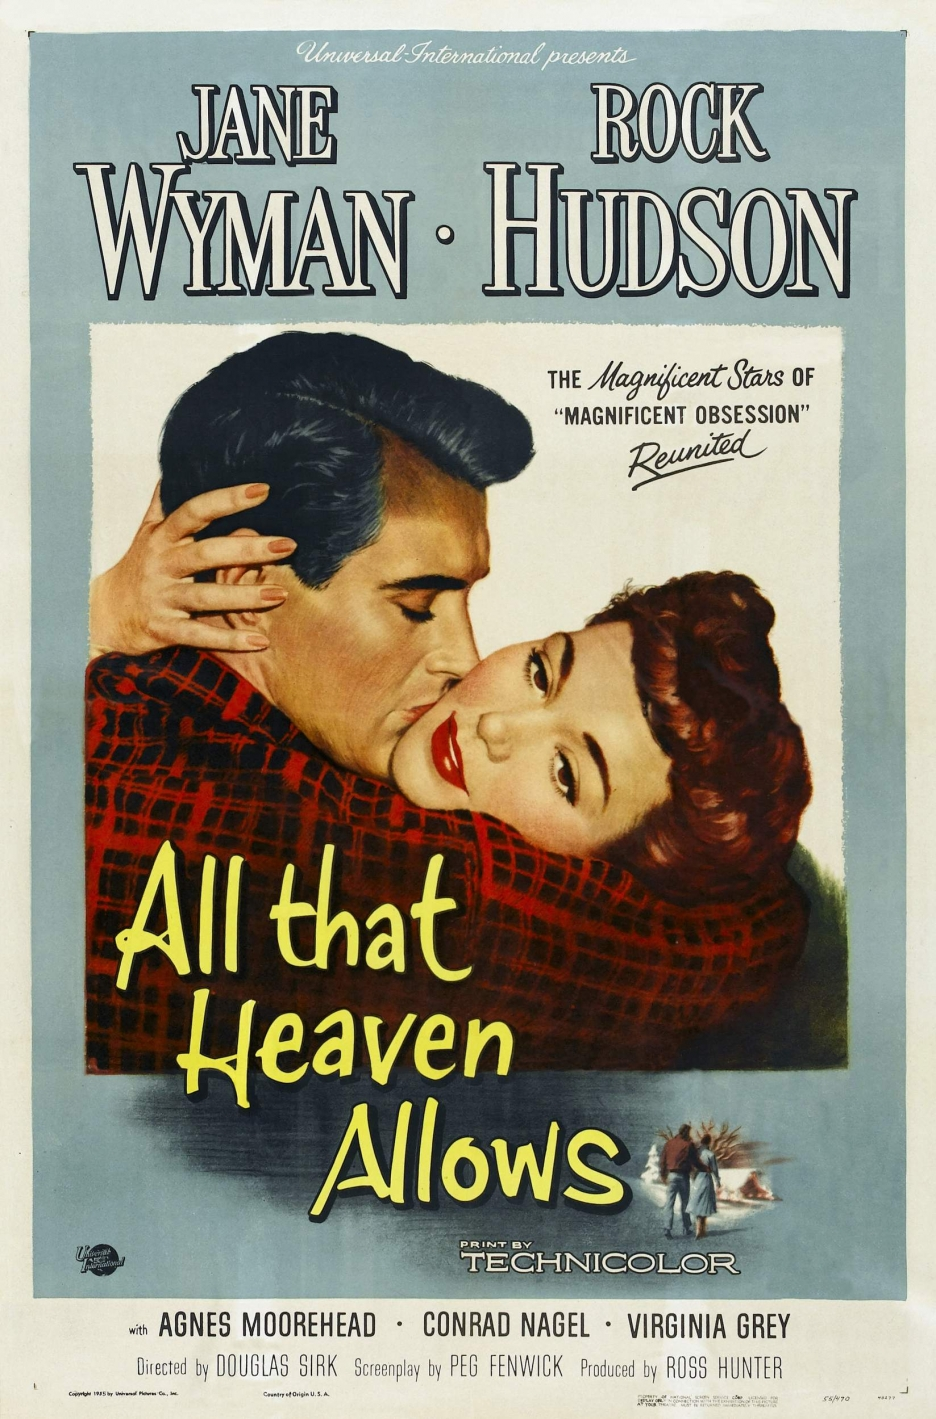 http://thefilmstage.com/wp-content/uploads/2014/08/936full-all-that-heaven-allows-poster.jpg